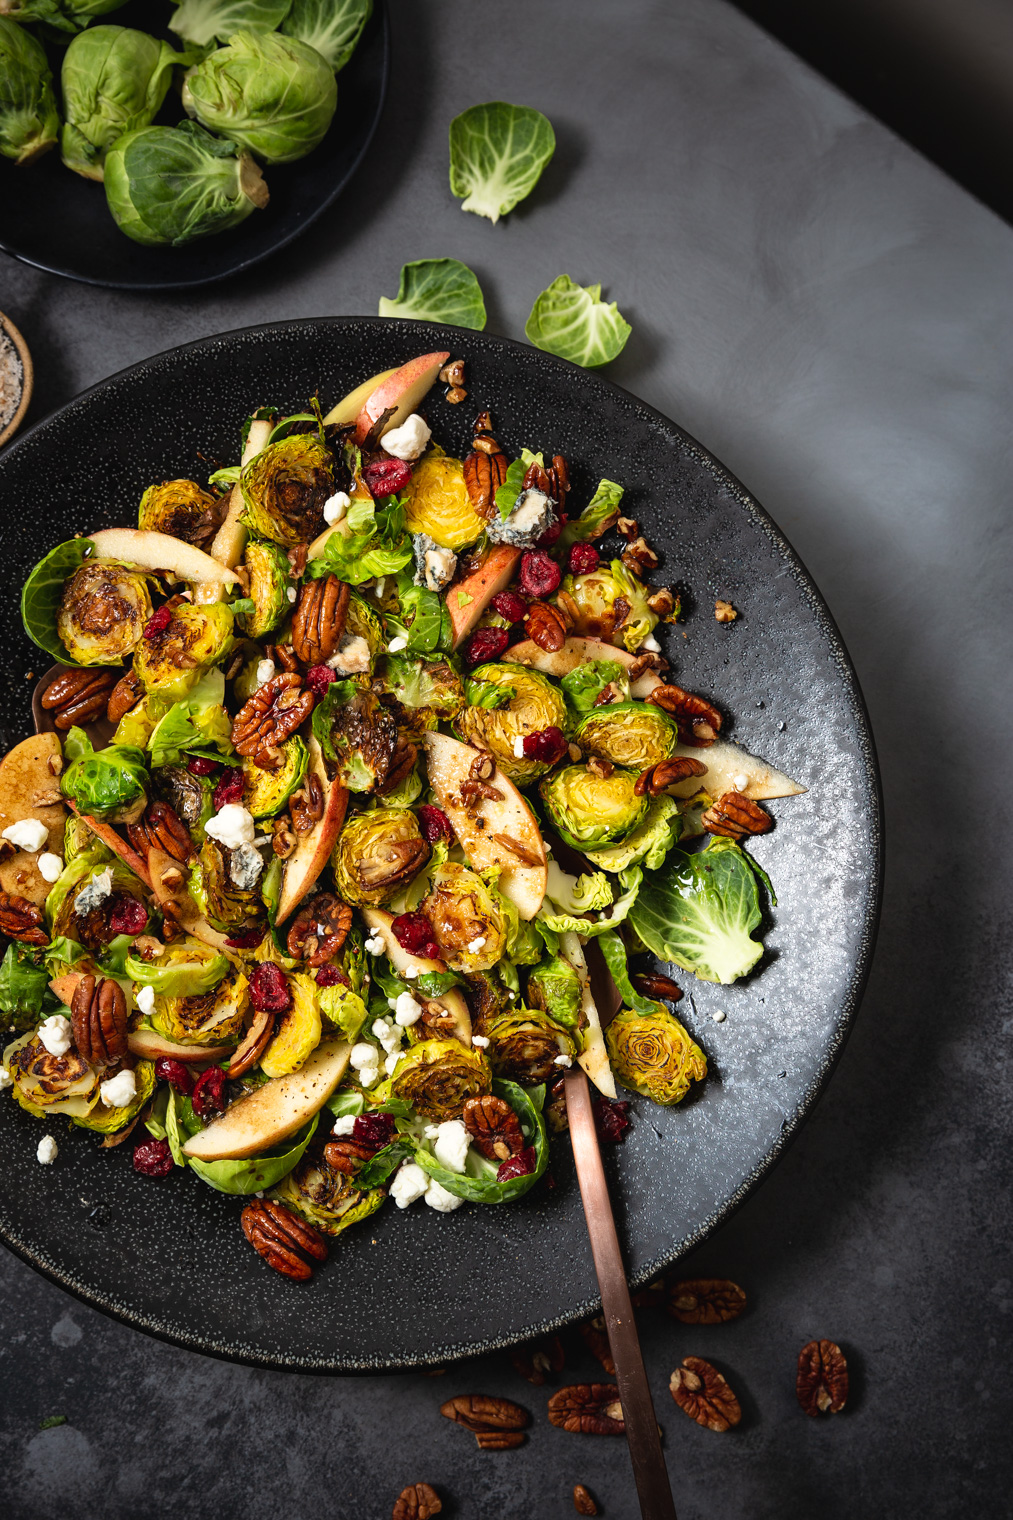 Roasted Brussels Sprouts Salad with Maple-Balsamic Vinaigrette